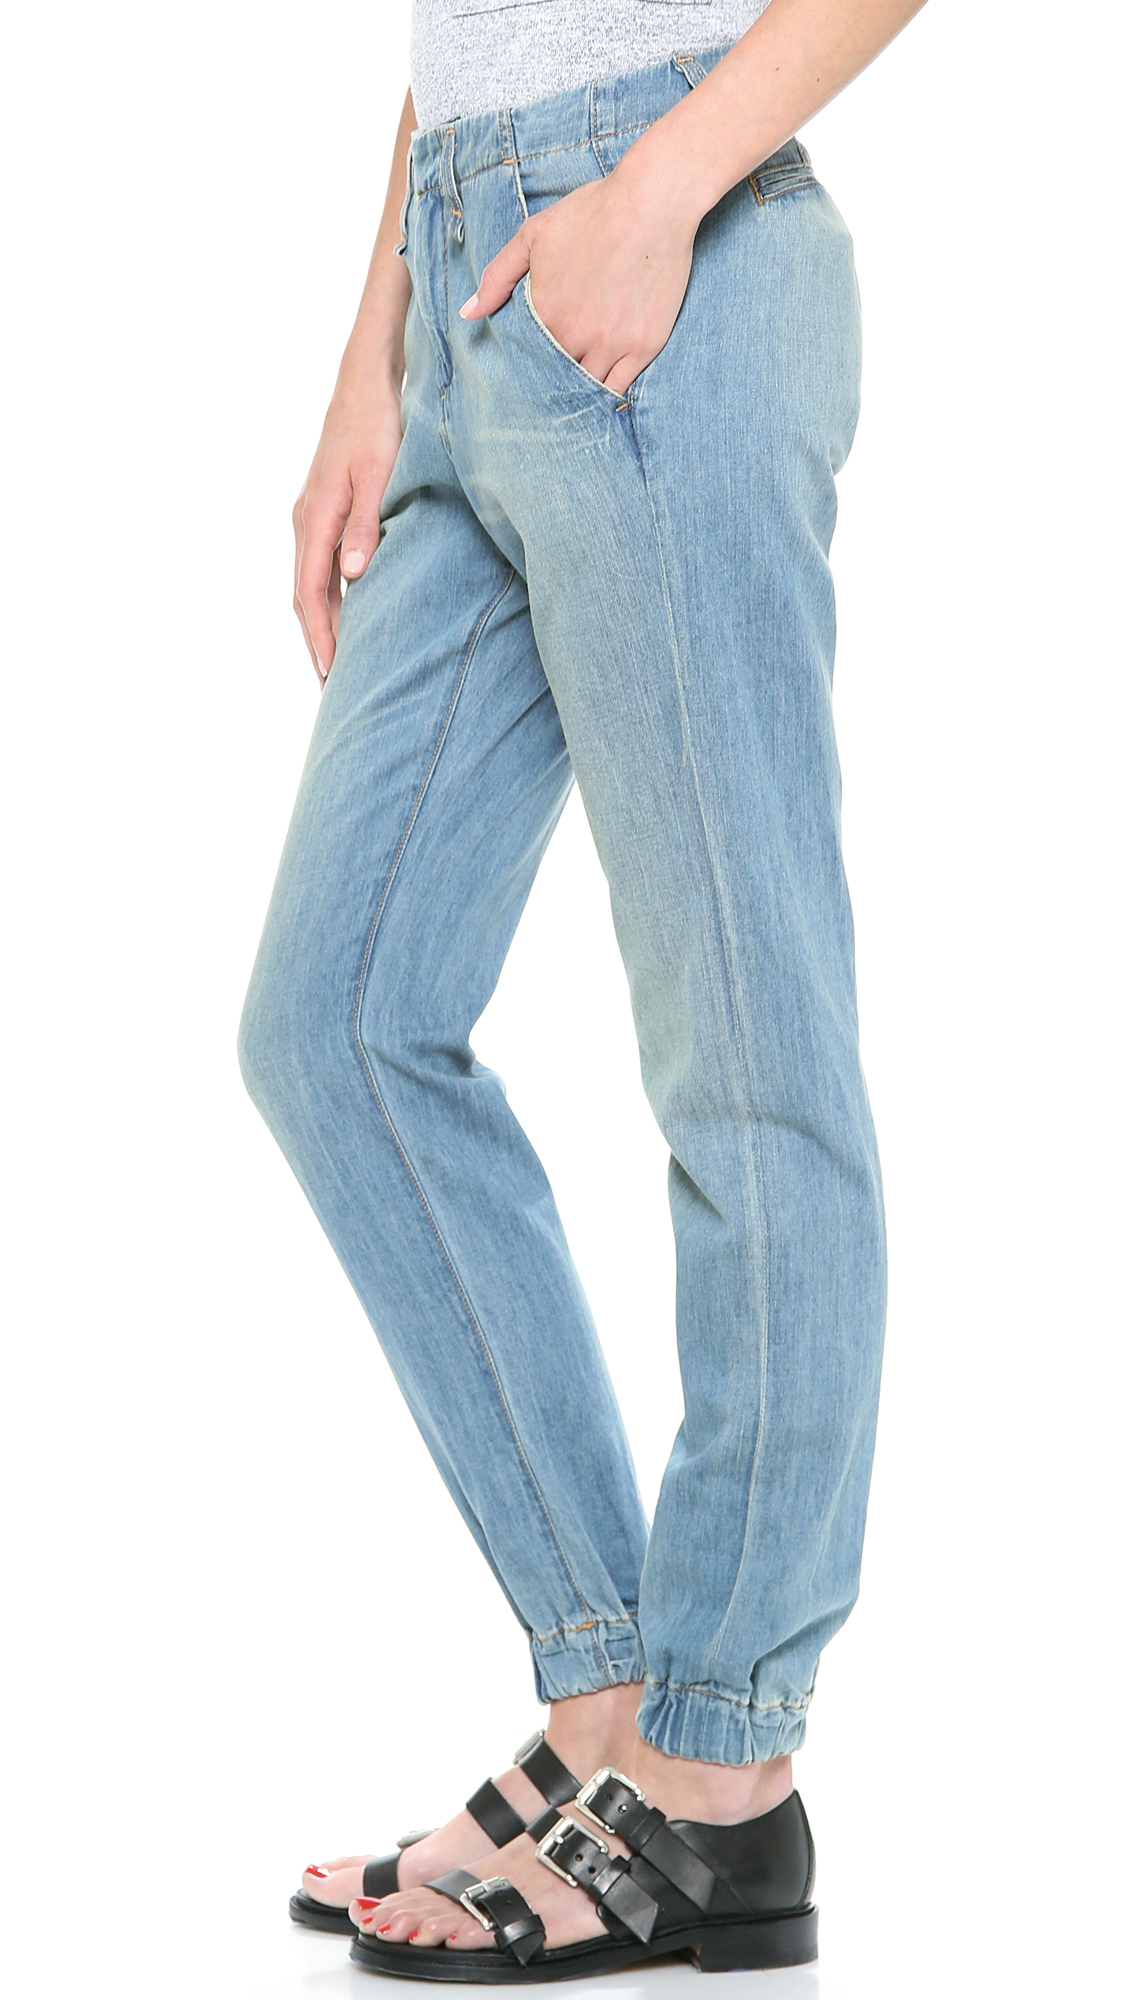 French terry Rag & Bone/JEAN lounge pants marry comfort with edge in a realistic, distressed denim trompe l'oeil print. Covered elastic cuffs. On-seam hip pockets. Elastic waistband. Fabric: French terry. % cotton. Wash cold. Made in Japan.